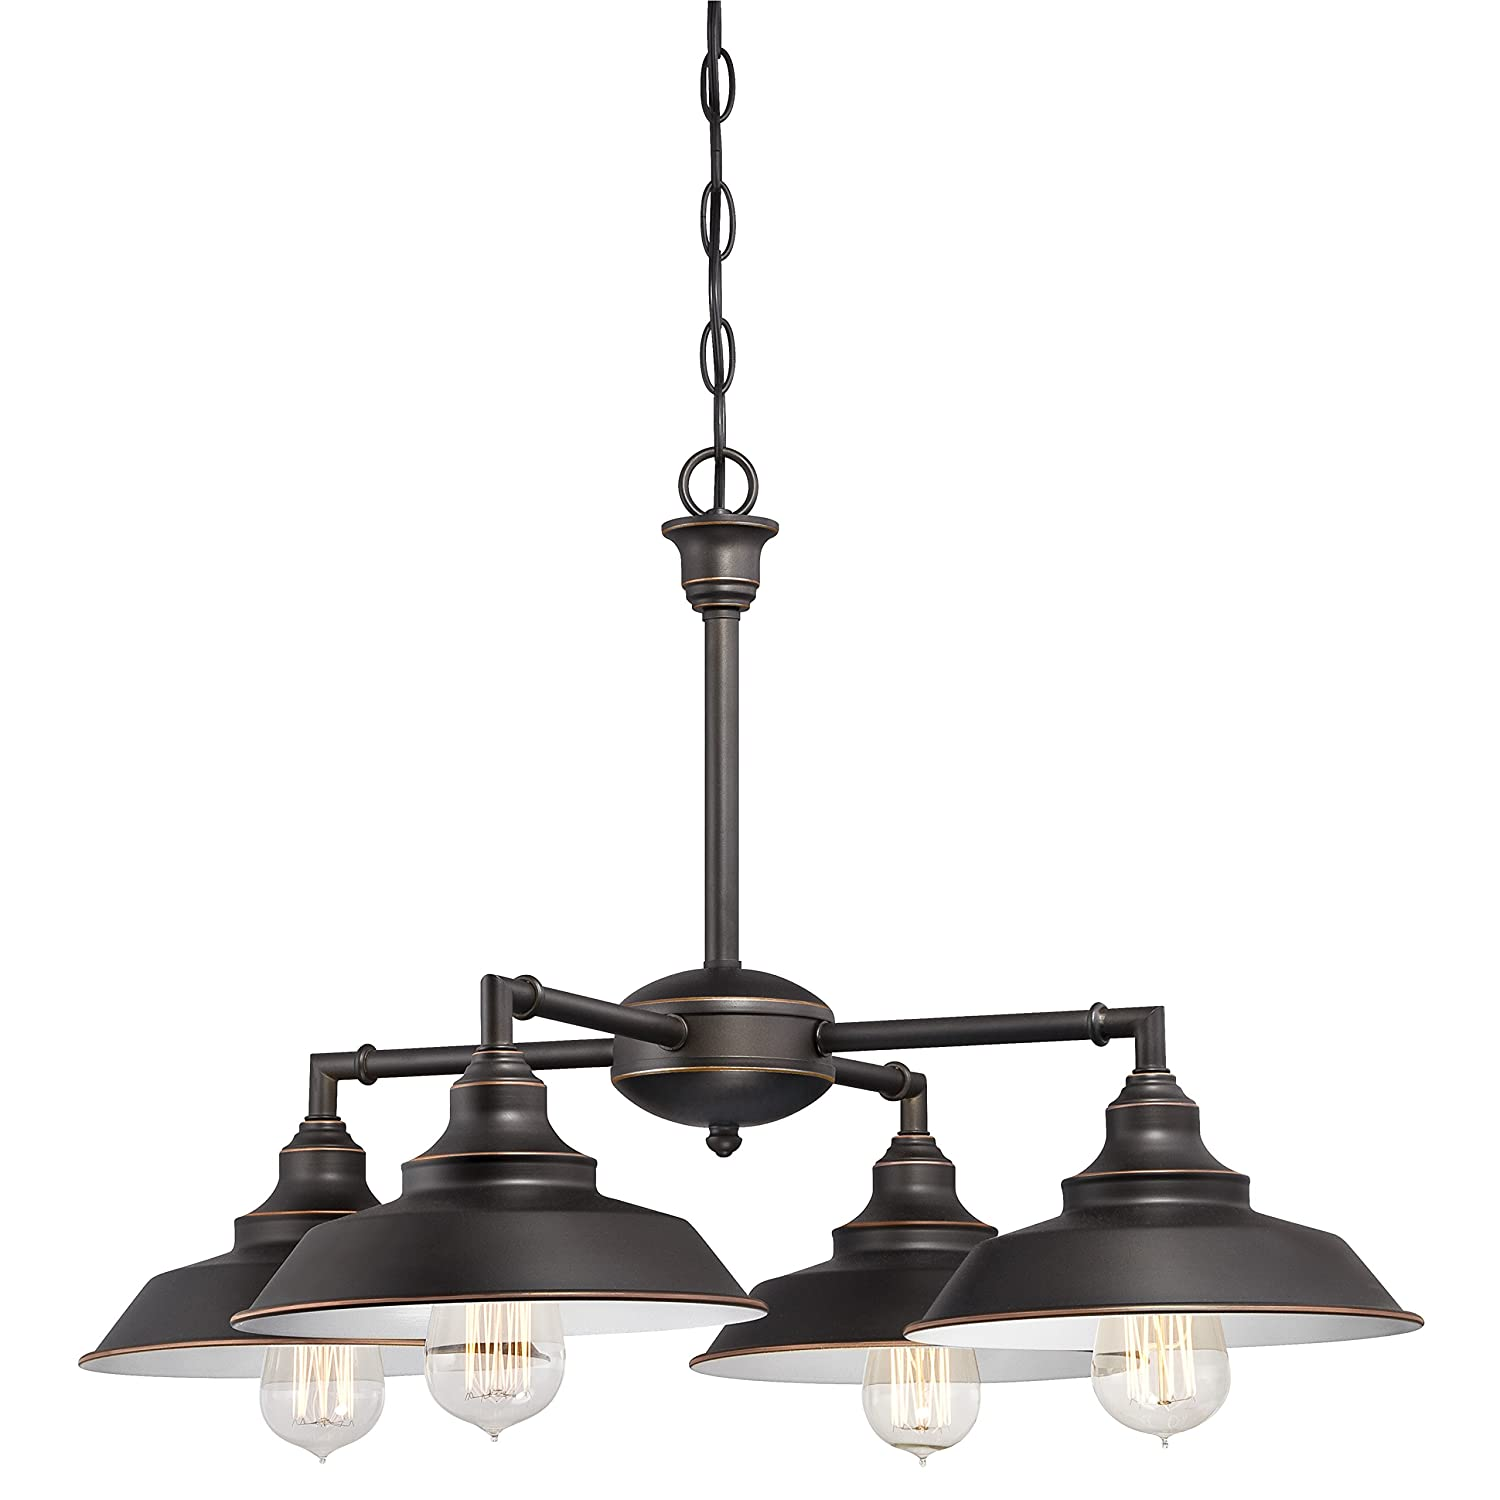 amazoncom iron hill fourlight indoor convertible ceiling fixture oil rubbed bronze finish with highlights and